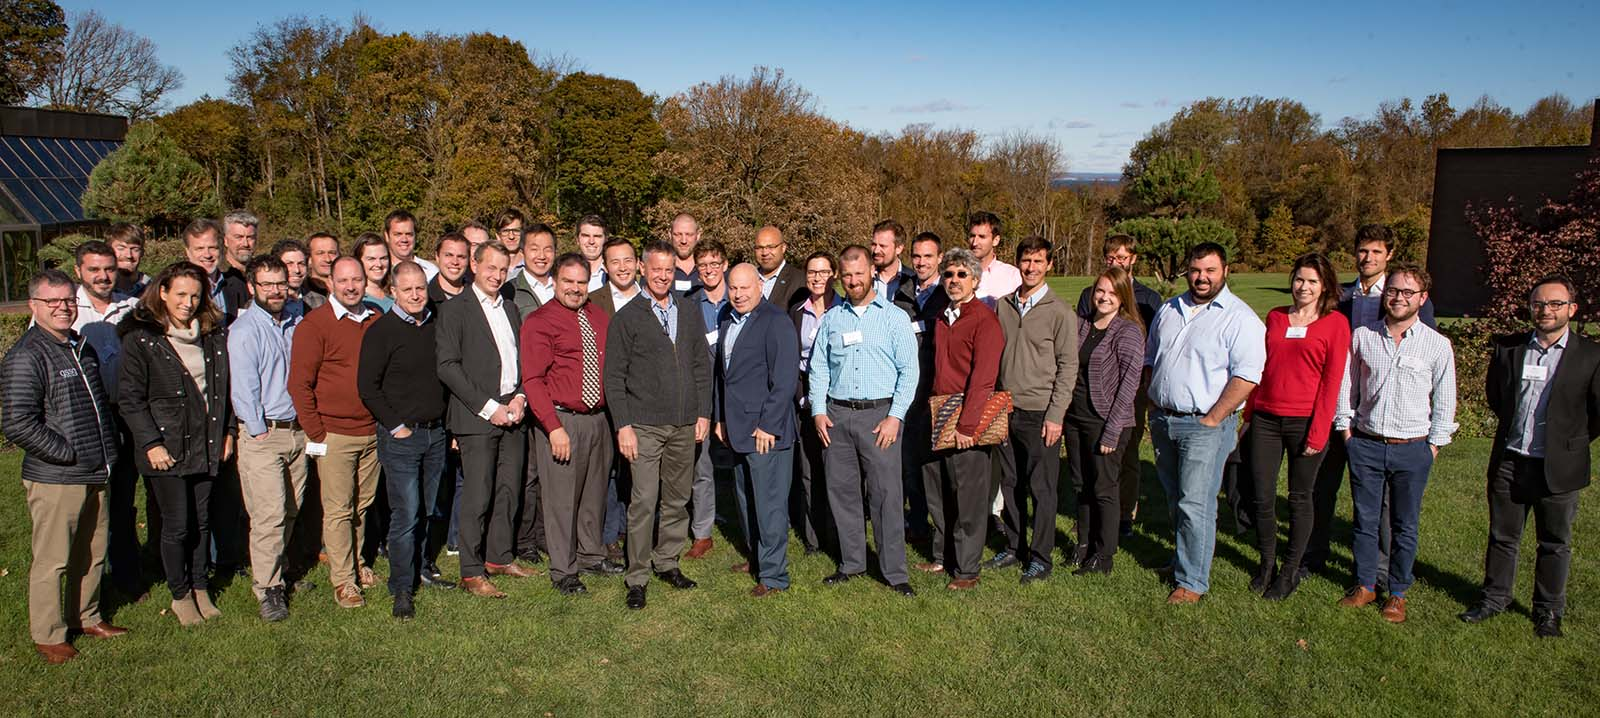 forty of the brightest minds in solar energy